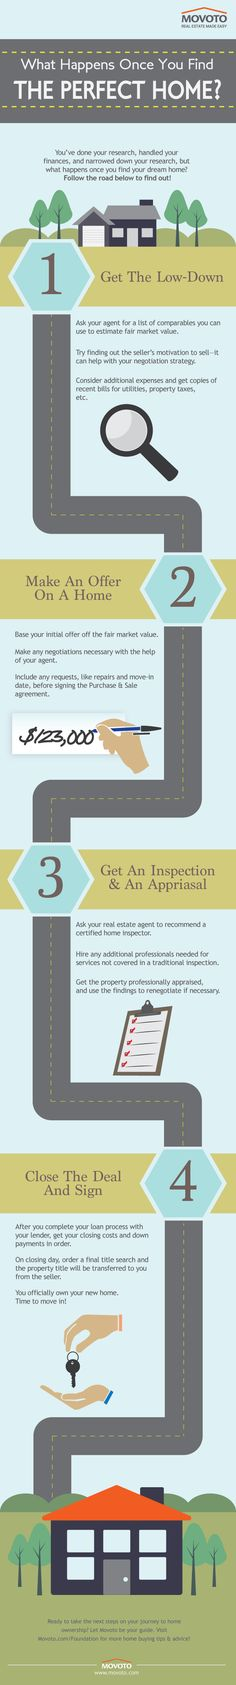 This helpful infographic explains the steps you'll take after your housing search has ended, but before you get the keys to your new home.  http://www.movoto.com/foundation/basics/home-offer-closing-infographic/